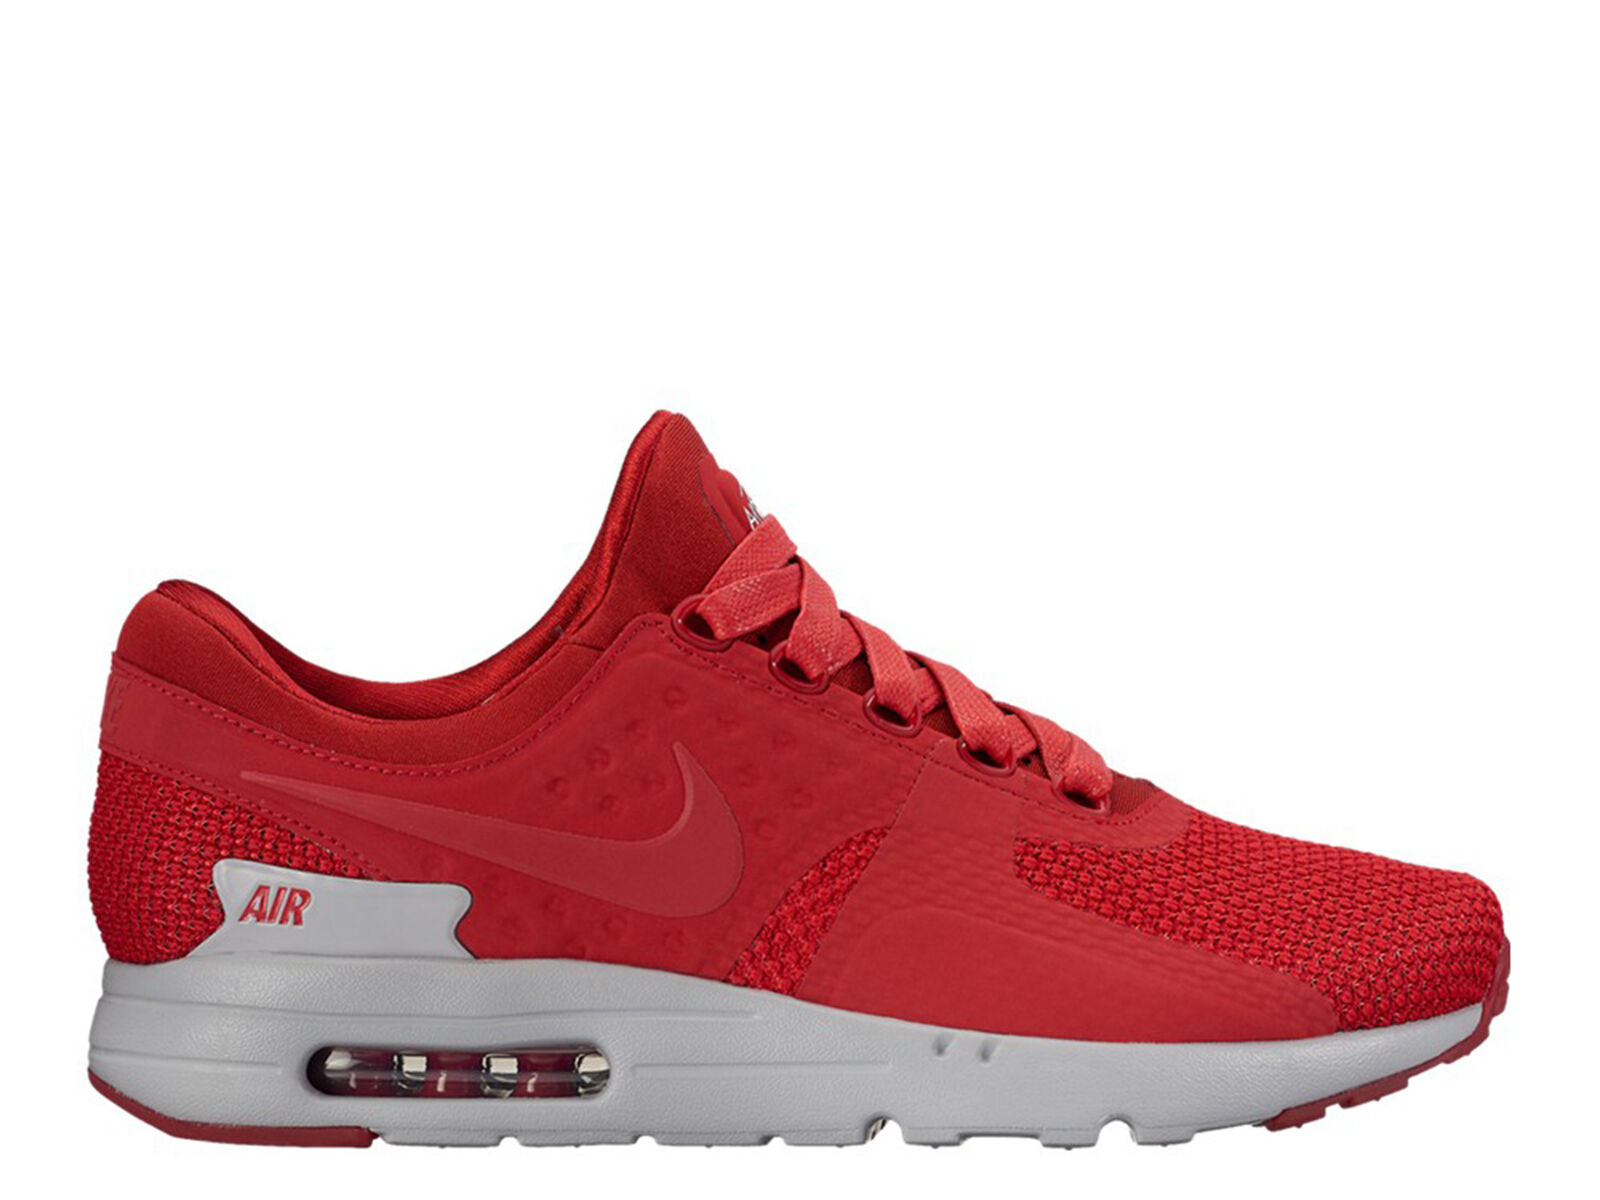 Brand New Nike Air Max Zero Premium Men's Athletic Fashion Sneakers [881982 600]